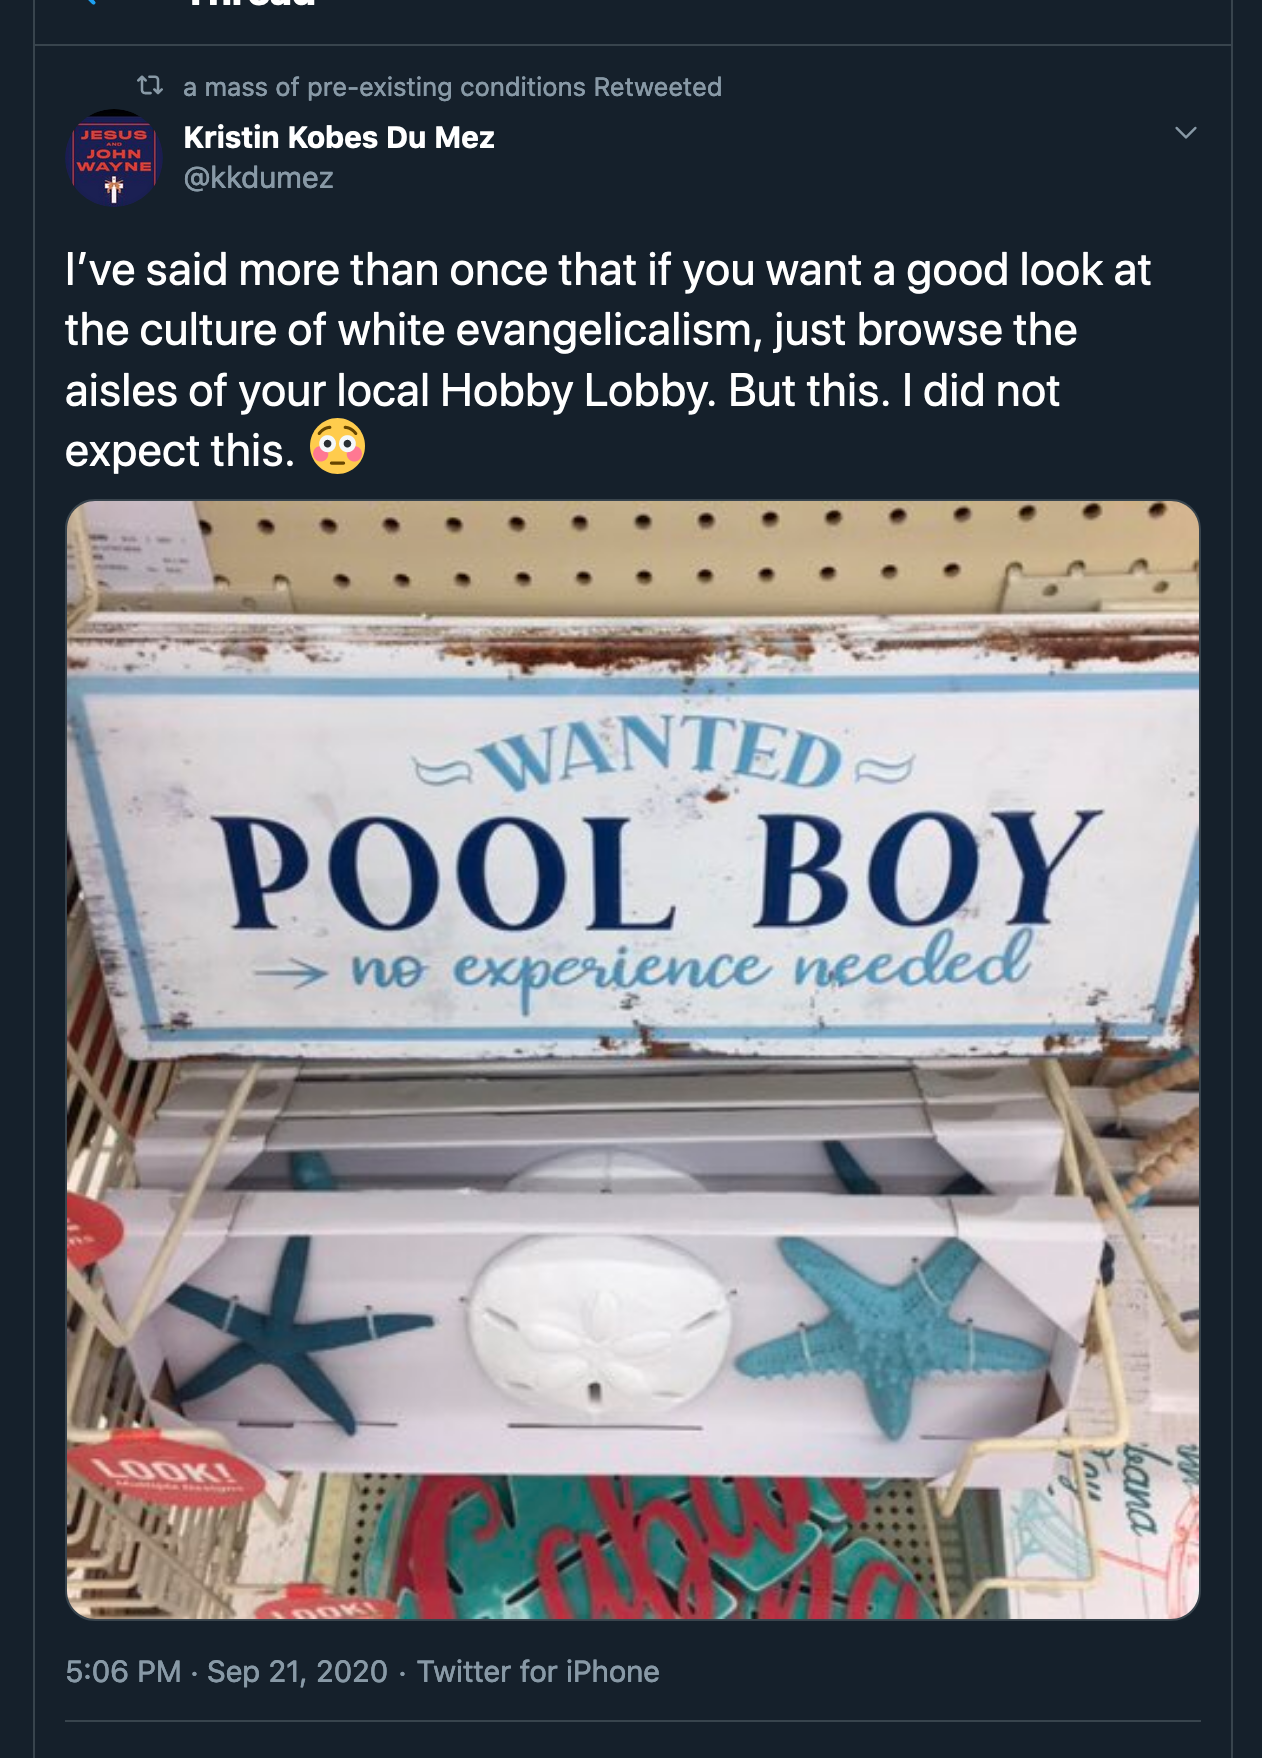 Retweet Kristin Kobes Du Mez @kkdumez: I've said more than once that if you want a good look at the culture of white evangelicalism, just browse the aisles of your local Hobby Lobby. But this. I did not expect this. With image of sign saying 'Wanted: Pool Boy, no experience necessary'